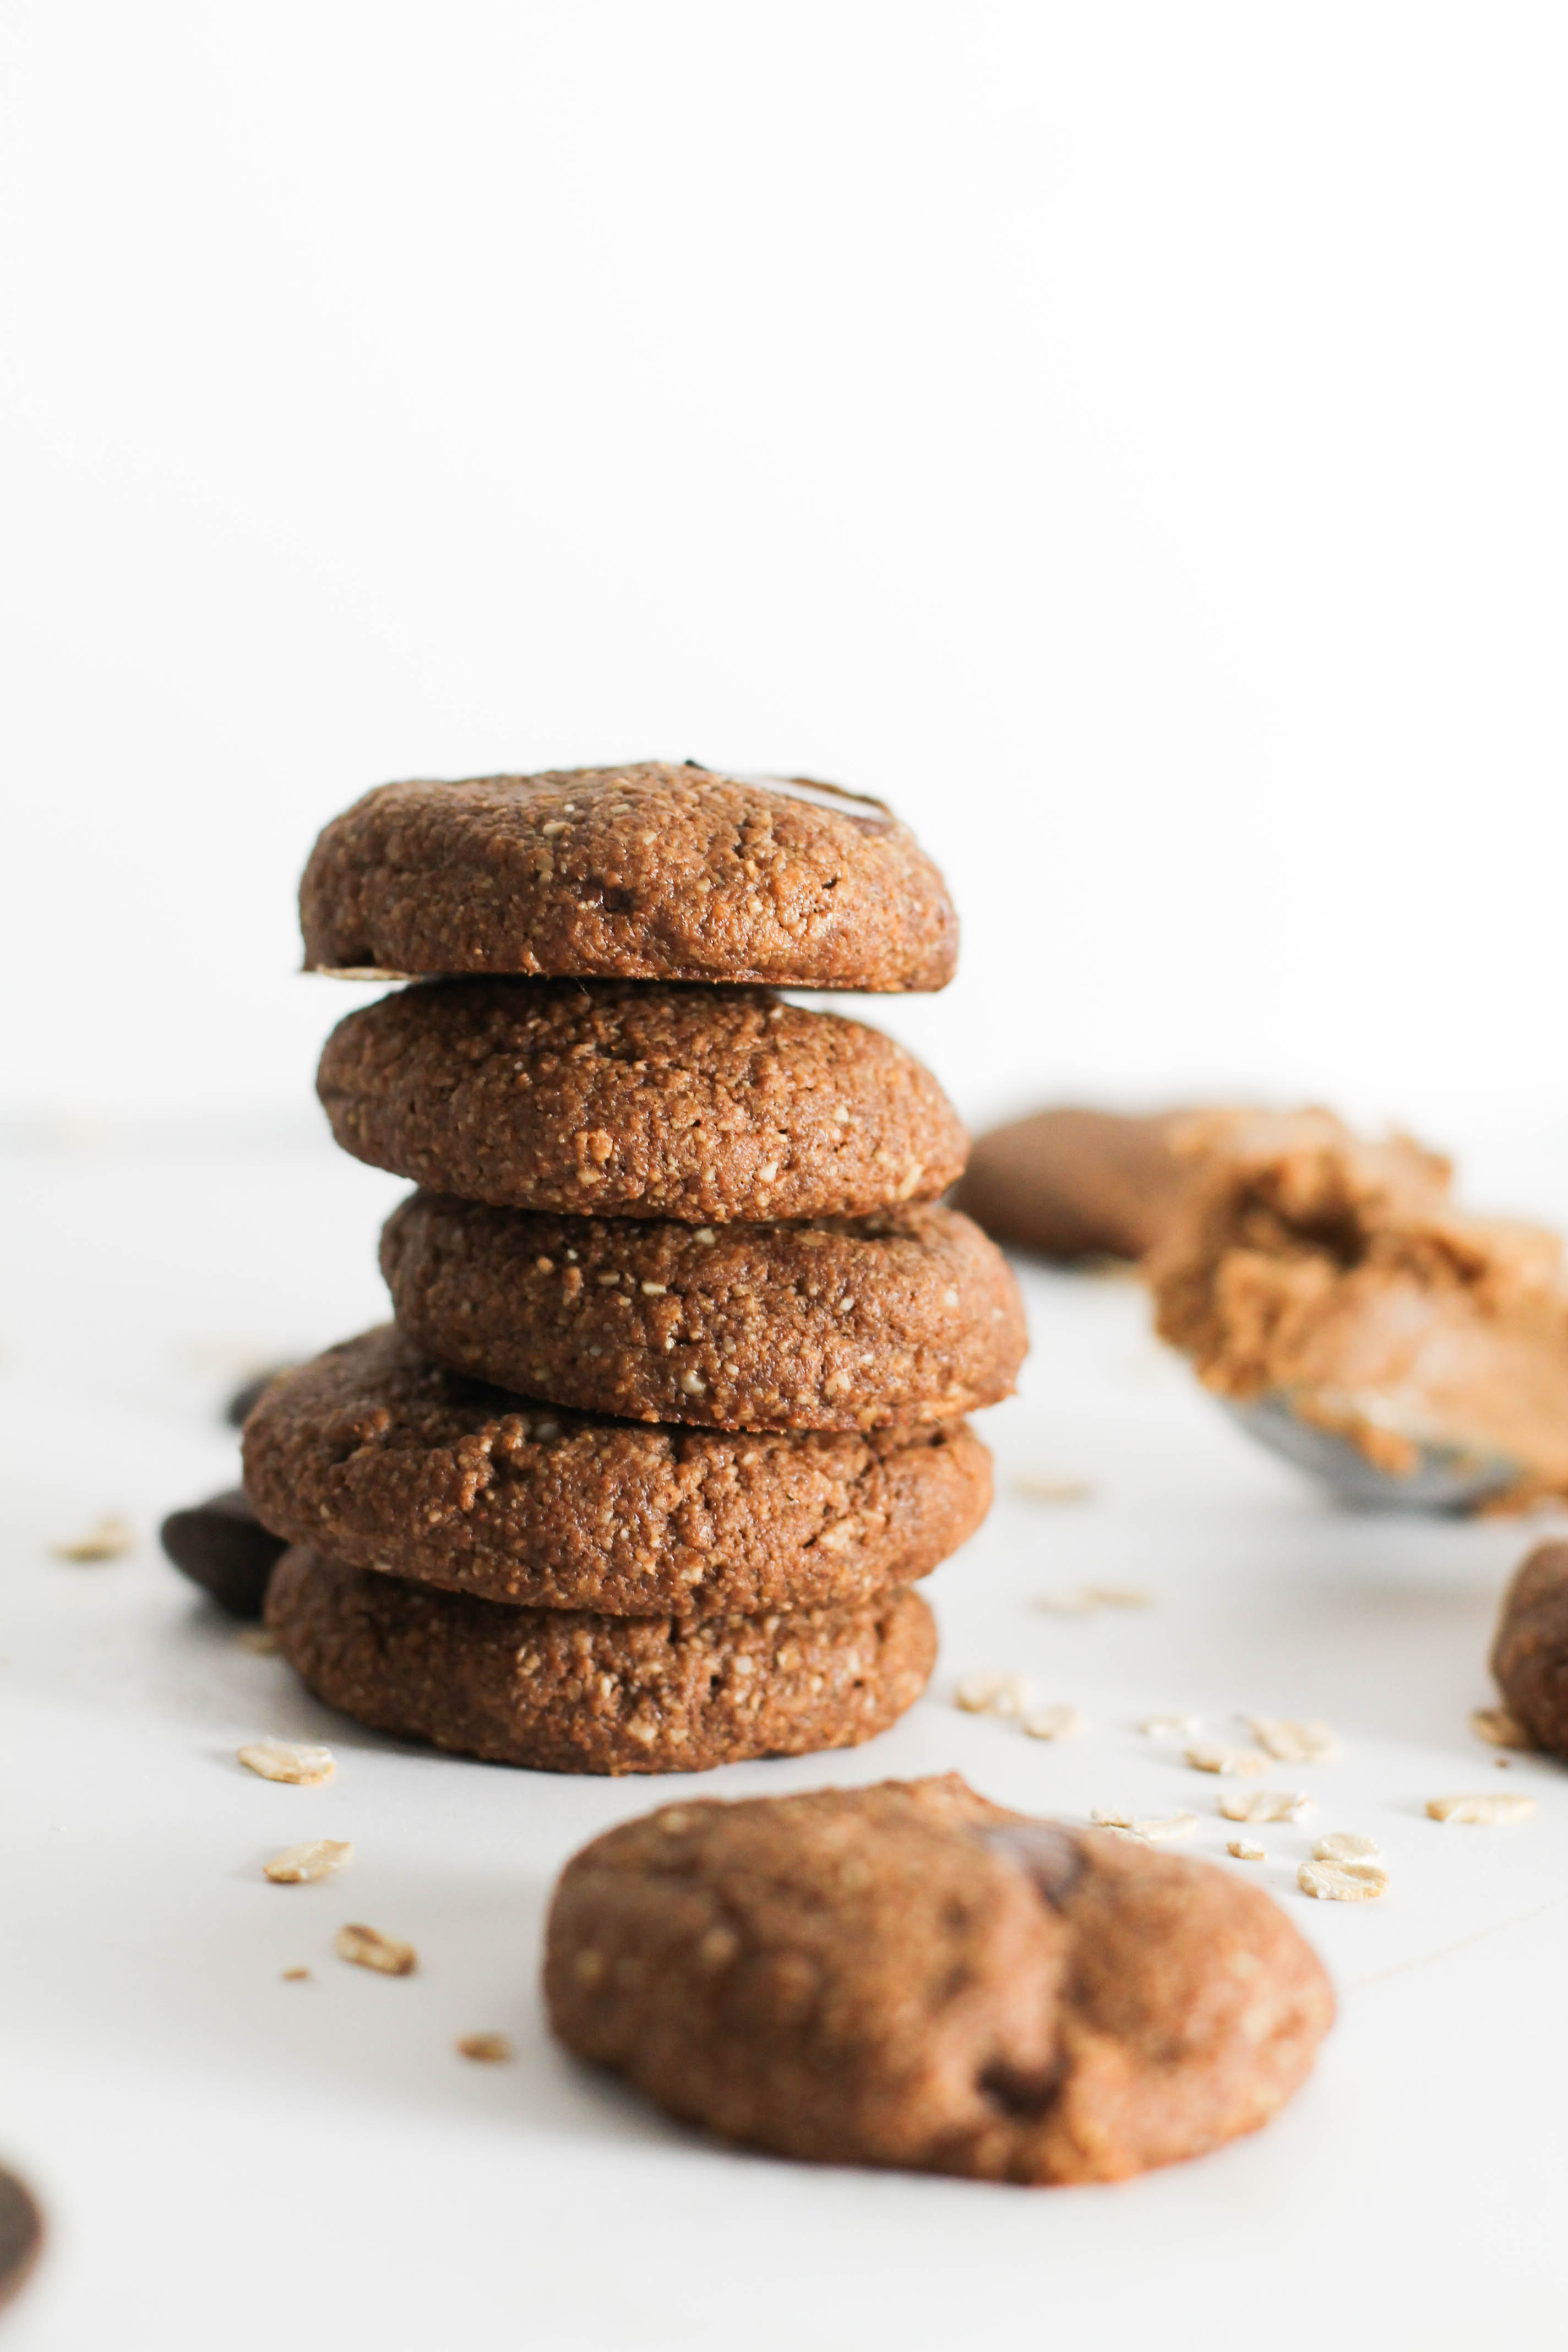 These flourless chocolate almond butter cookies are vegan, gluten free, and delicious. They require one bowl, 30 minutes, and less than 10 ingredients. Filled with chocolate and almond butter, these make for the perfect dessert.